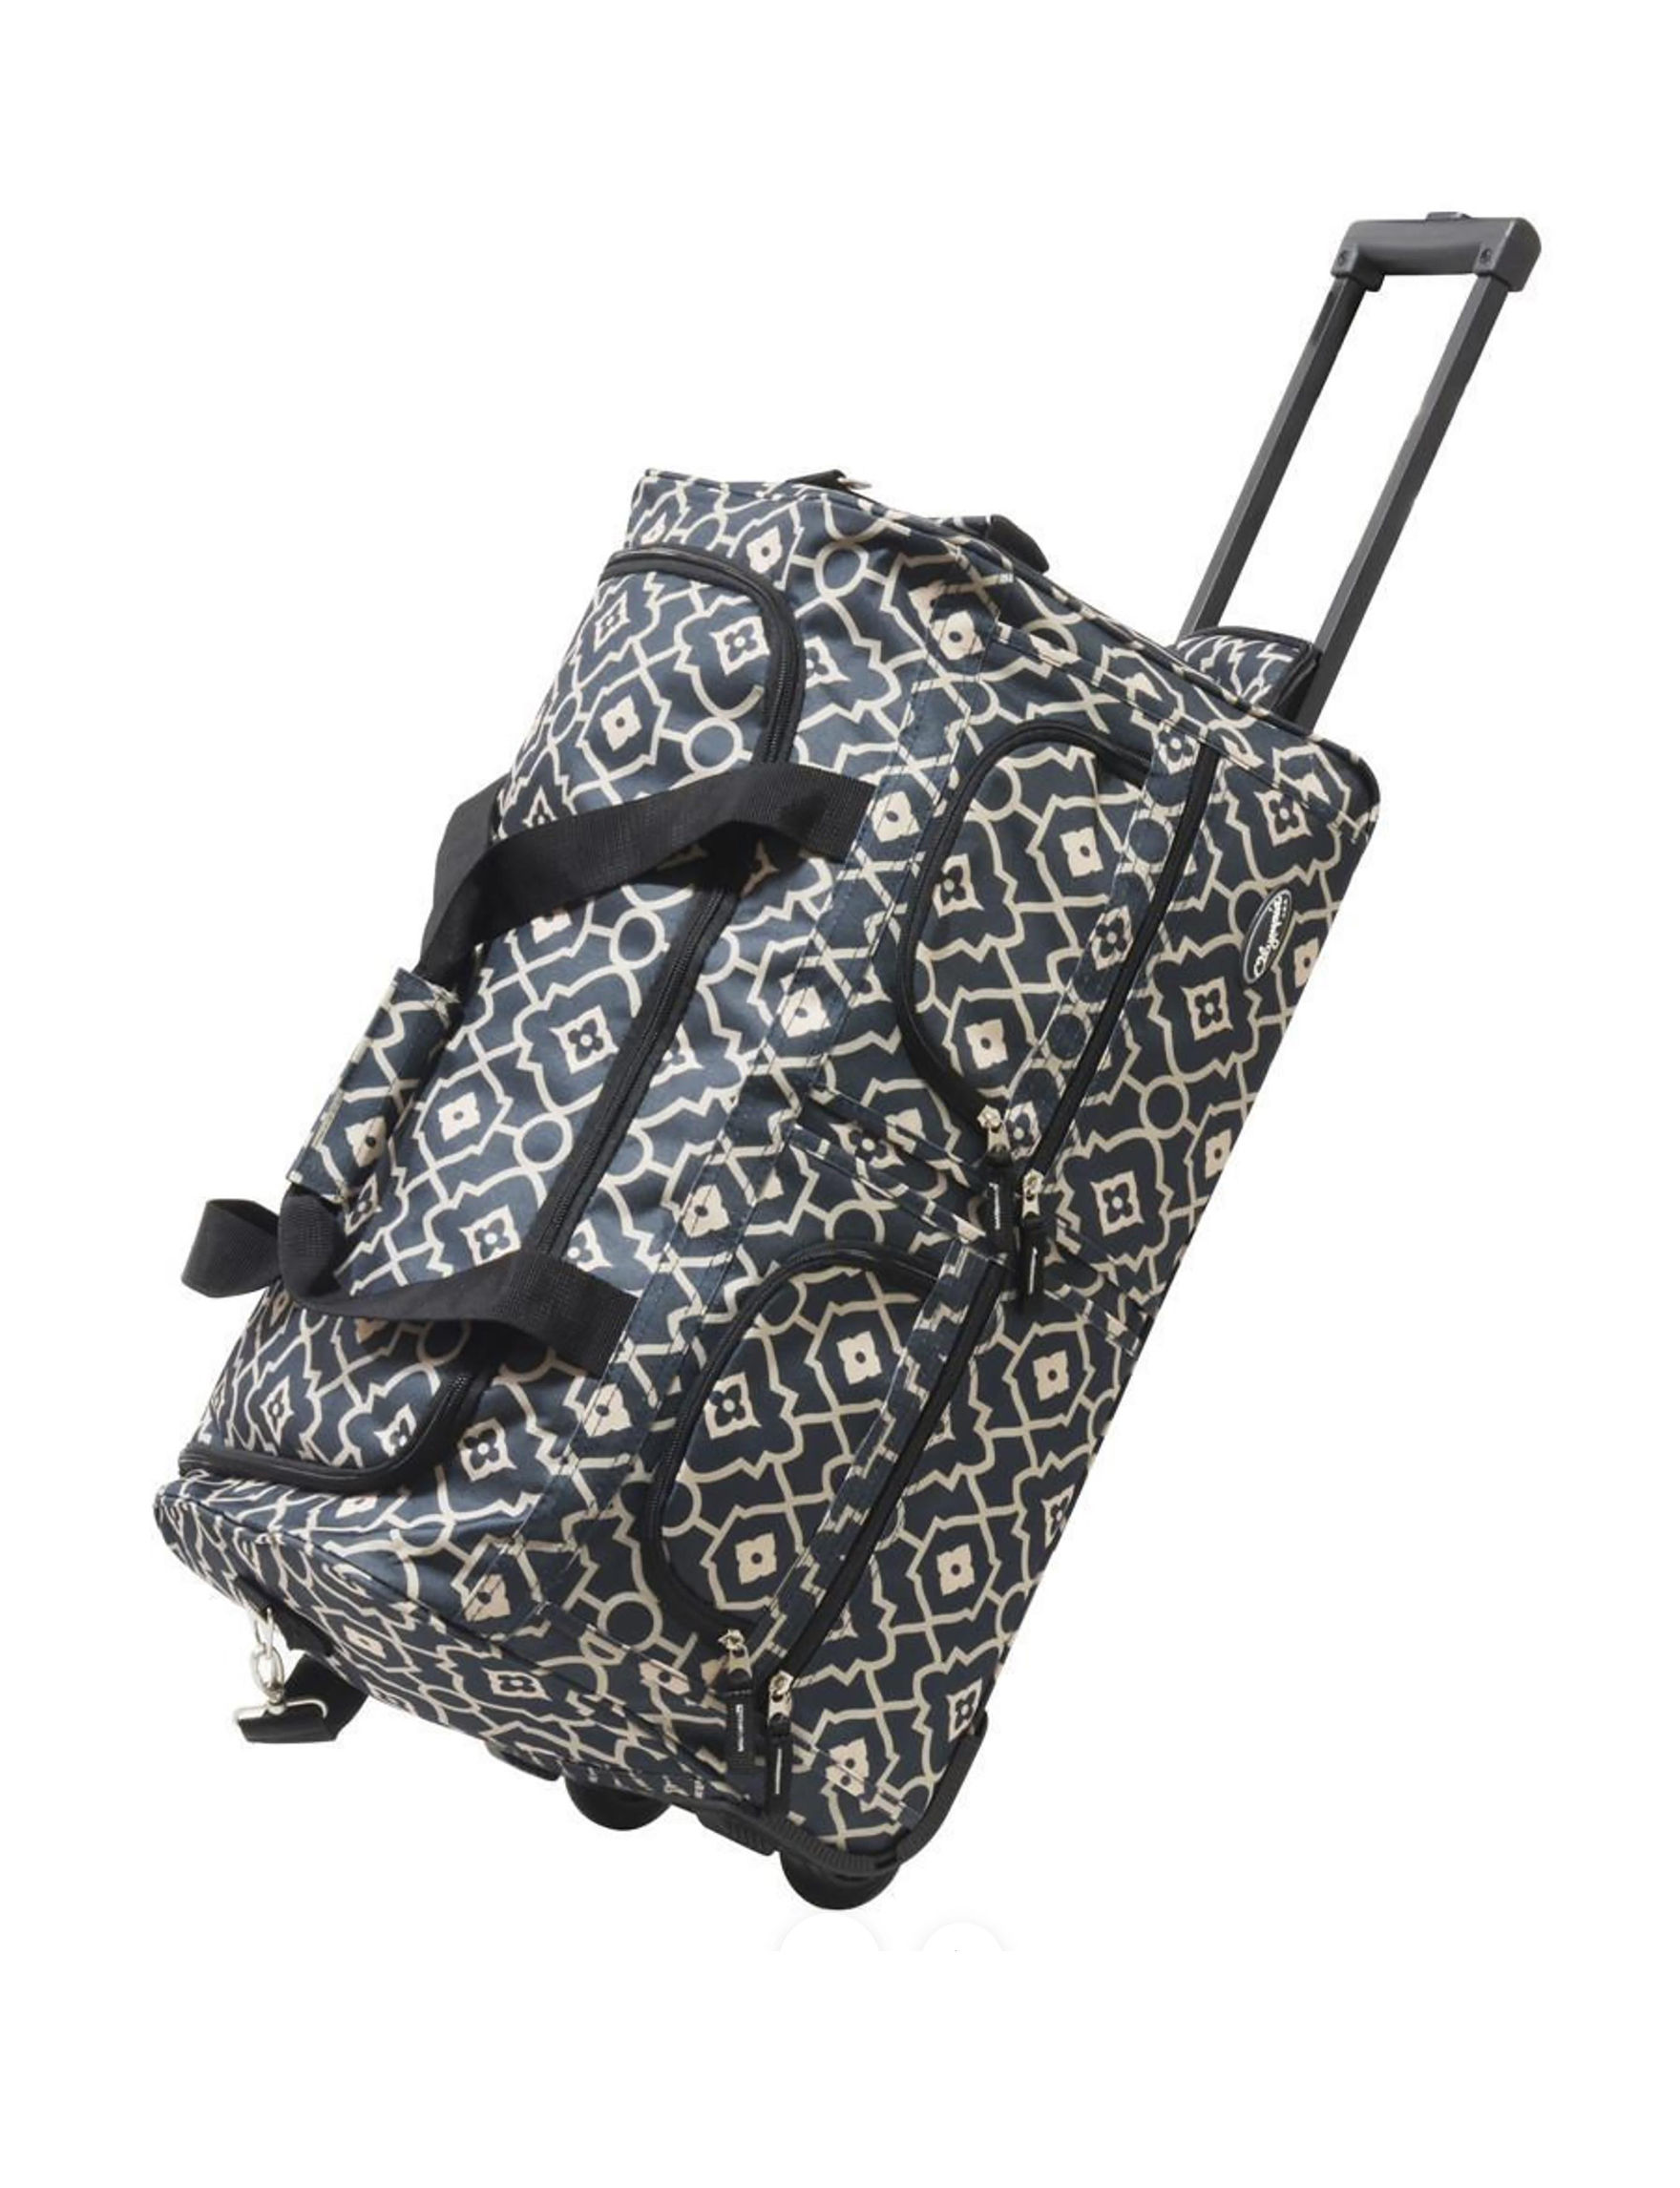 Olympia Black / White Softside Carry On Luggage Duffle Bags